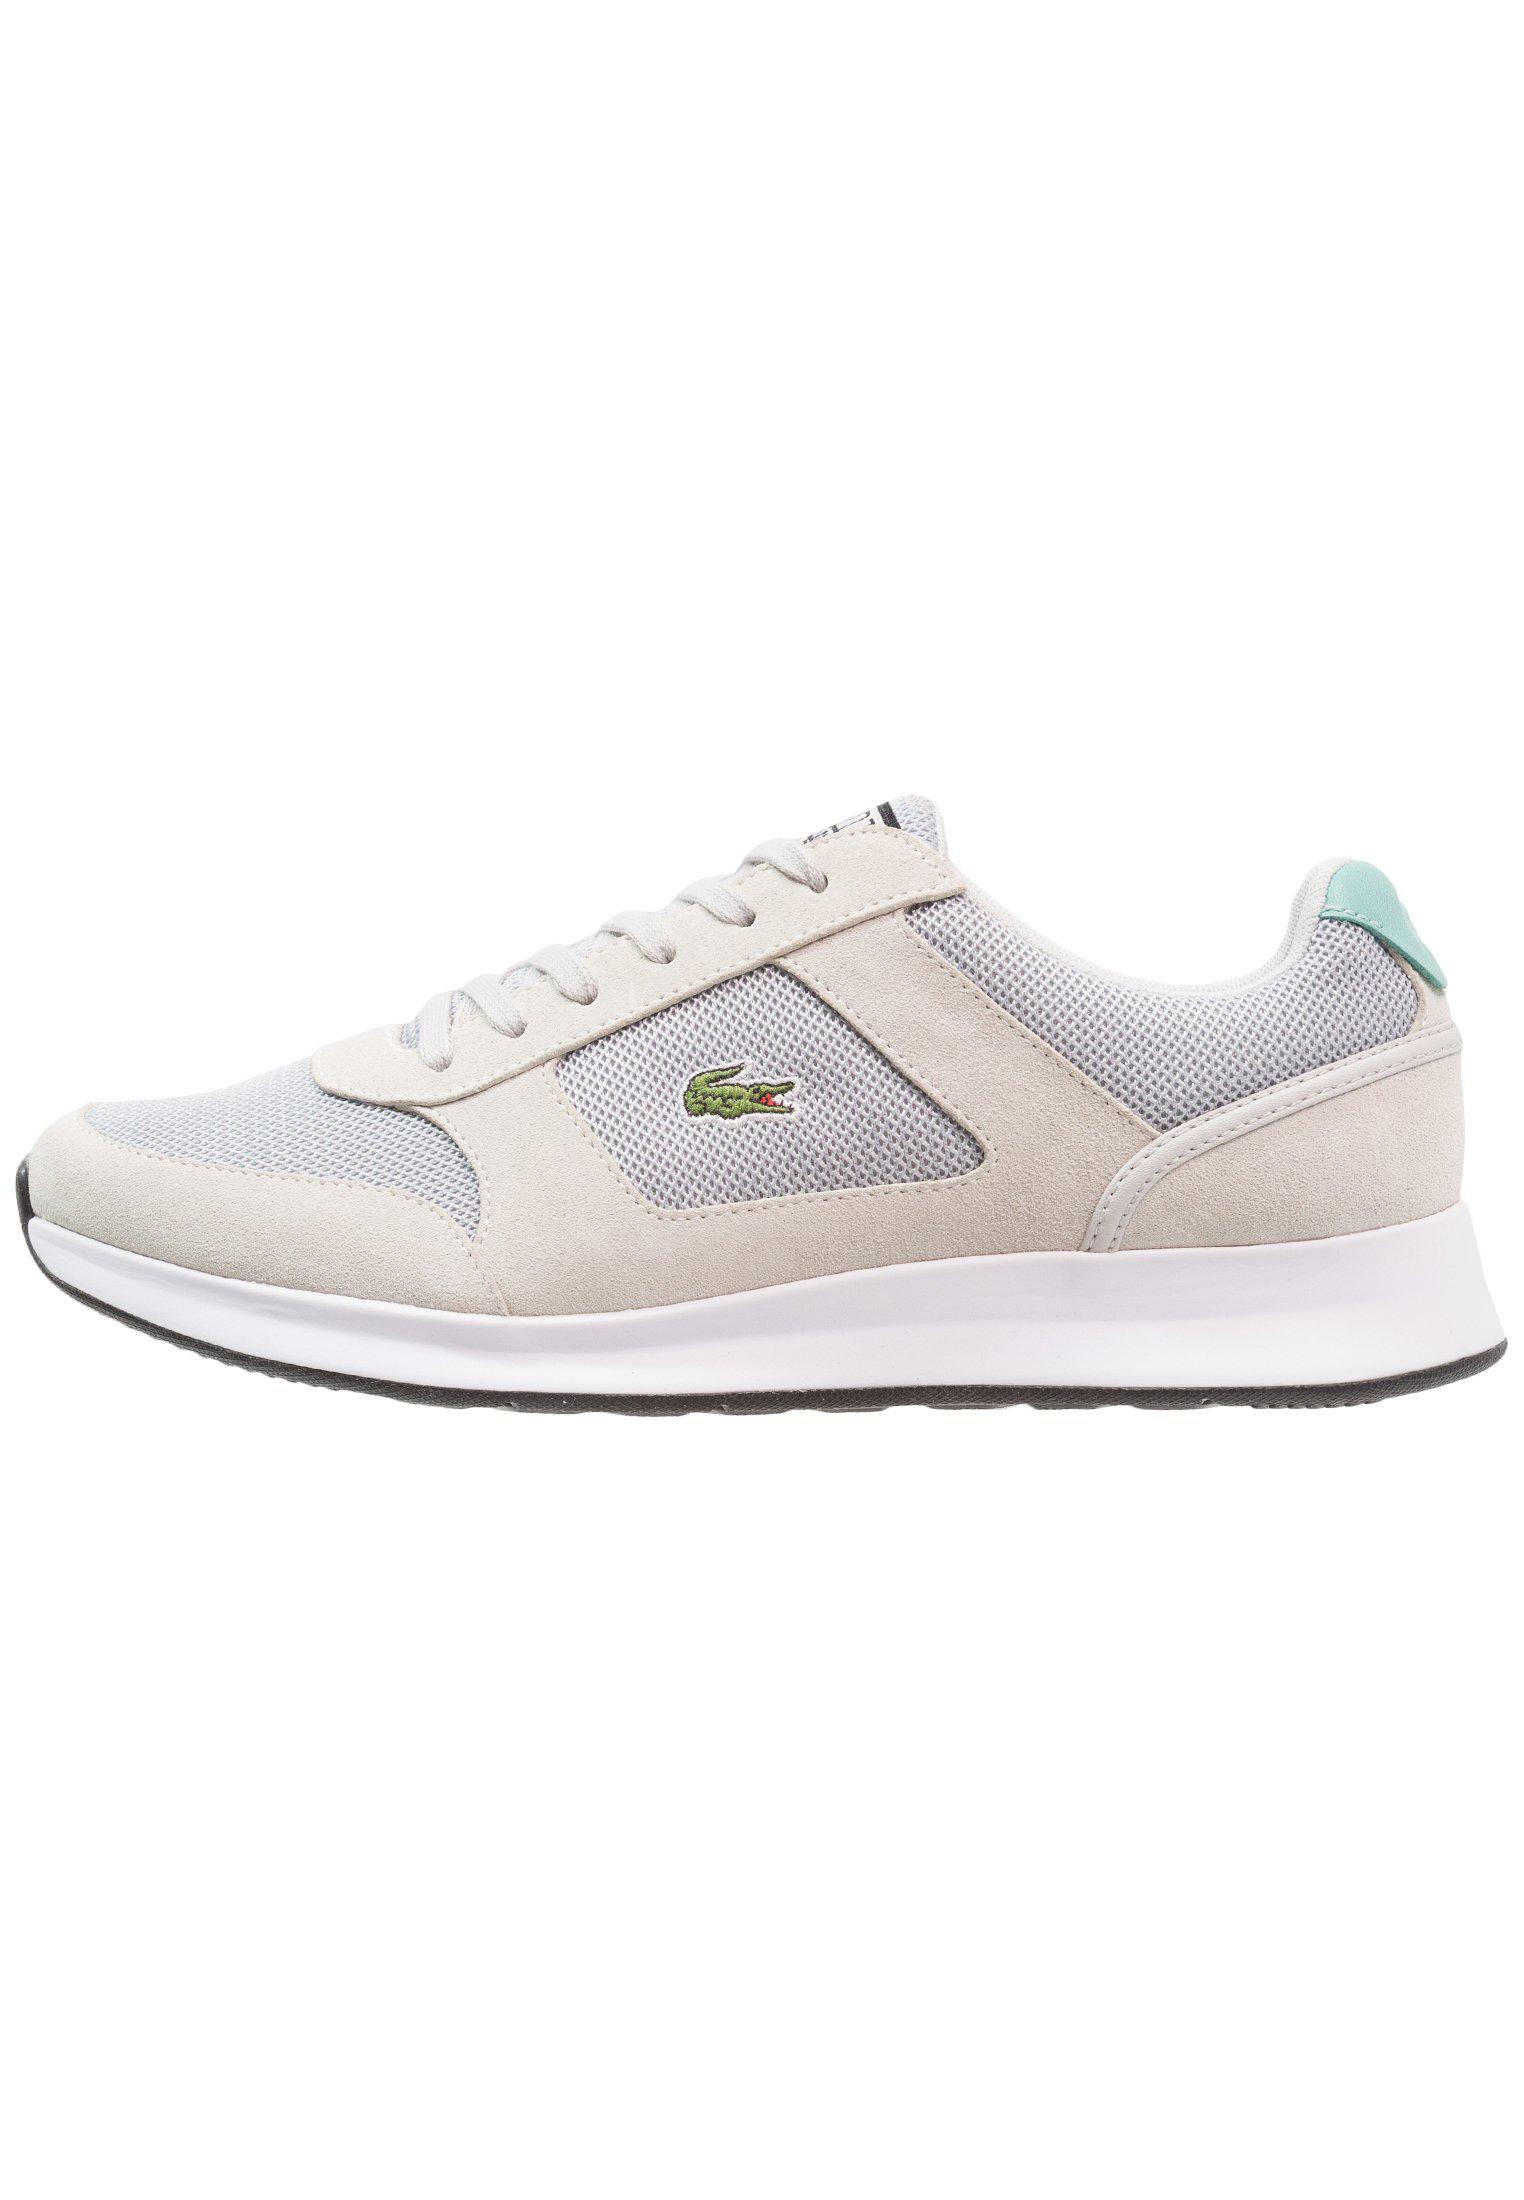 52a14396cdcf31 Lyst - Lacoste Joggeur Trainers in Grey for Men